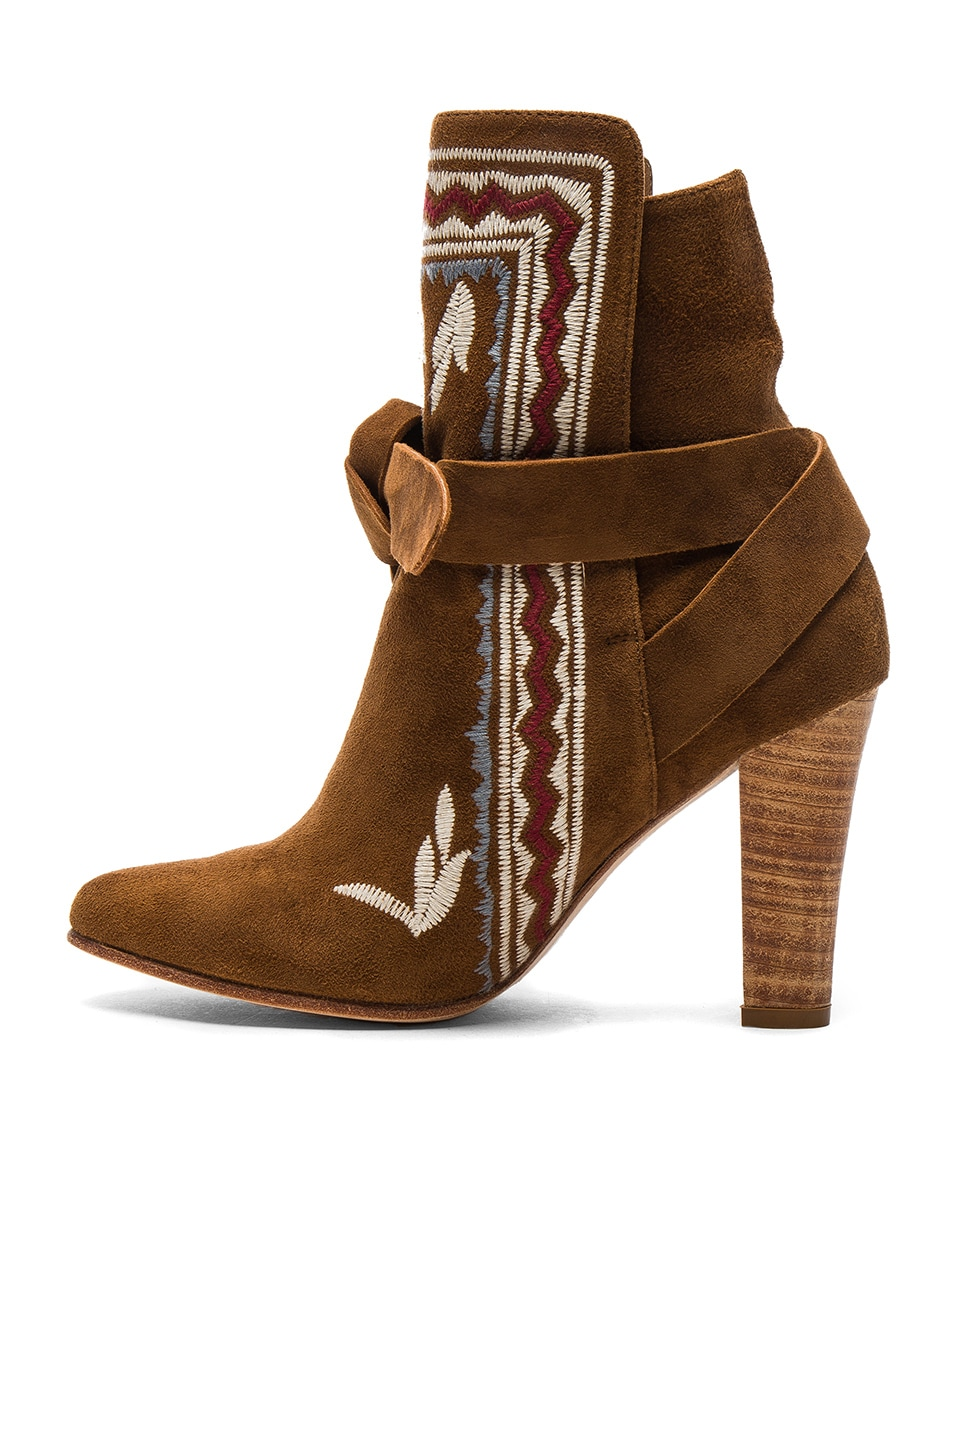 Image 5 of Ulla Johnson Embroidered Suede Aggie Booties in Saddle Suede